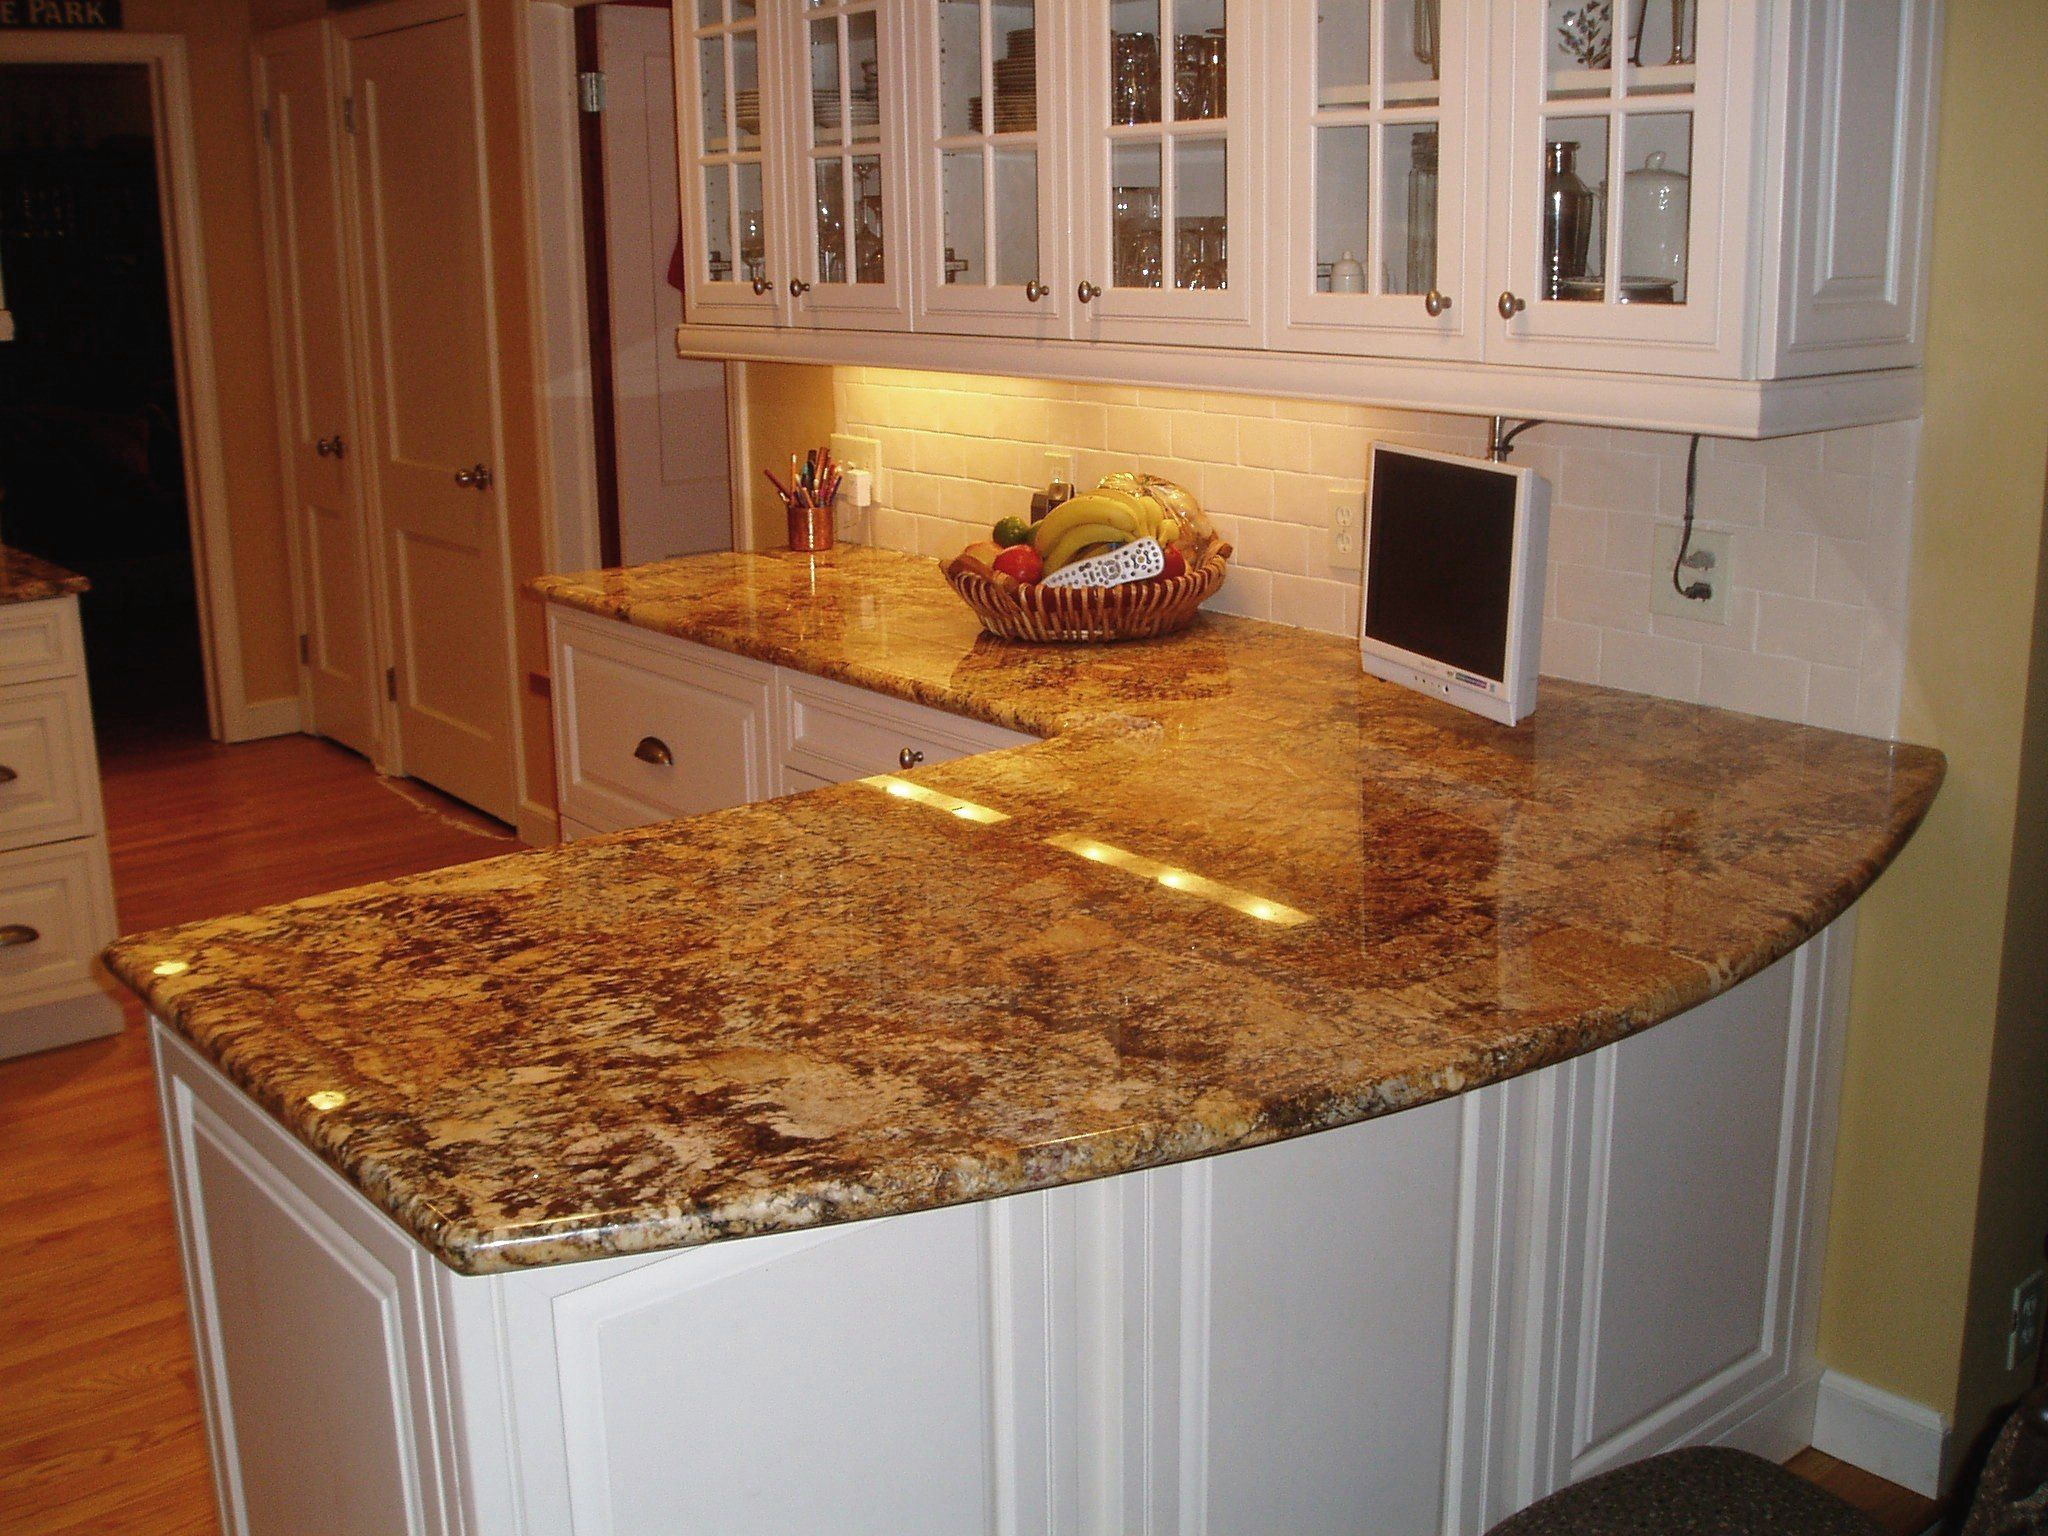 Kitchen Countertops Design Pinterest Image Of Solutions To Overcome High Price Of Granite